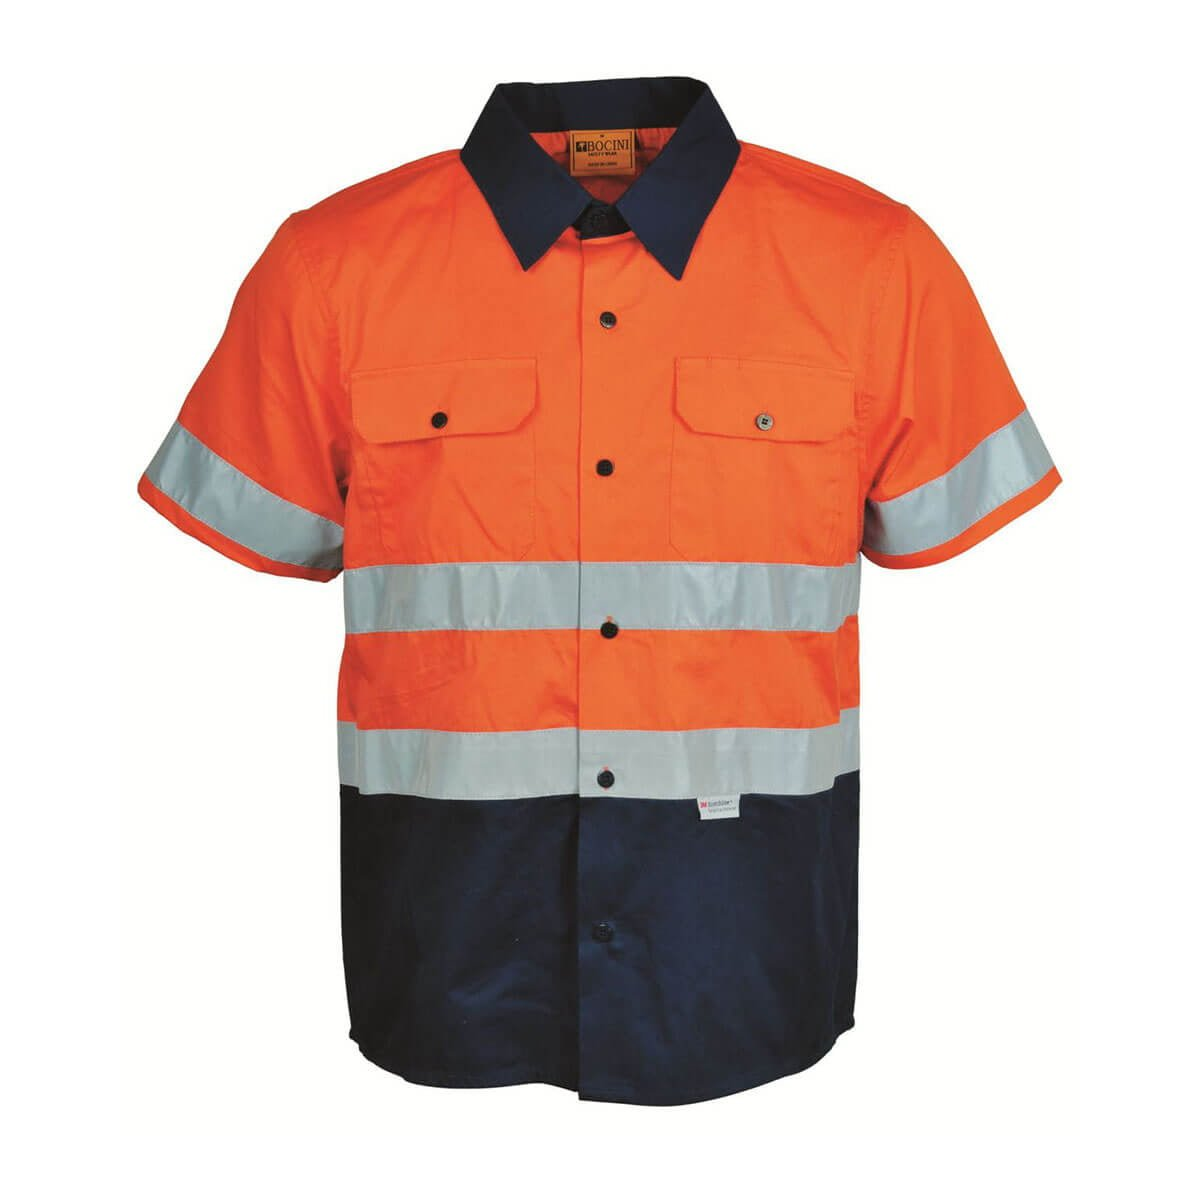 HI-VIS S/S COTTON DRILL SHIRT WITH TAPE-Orange / Navy